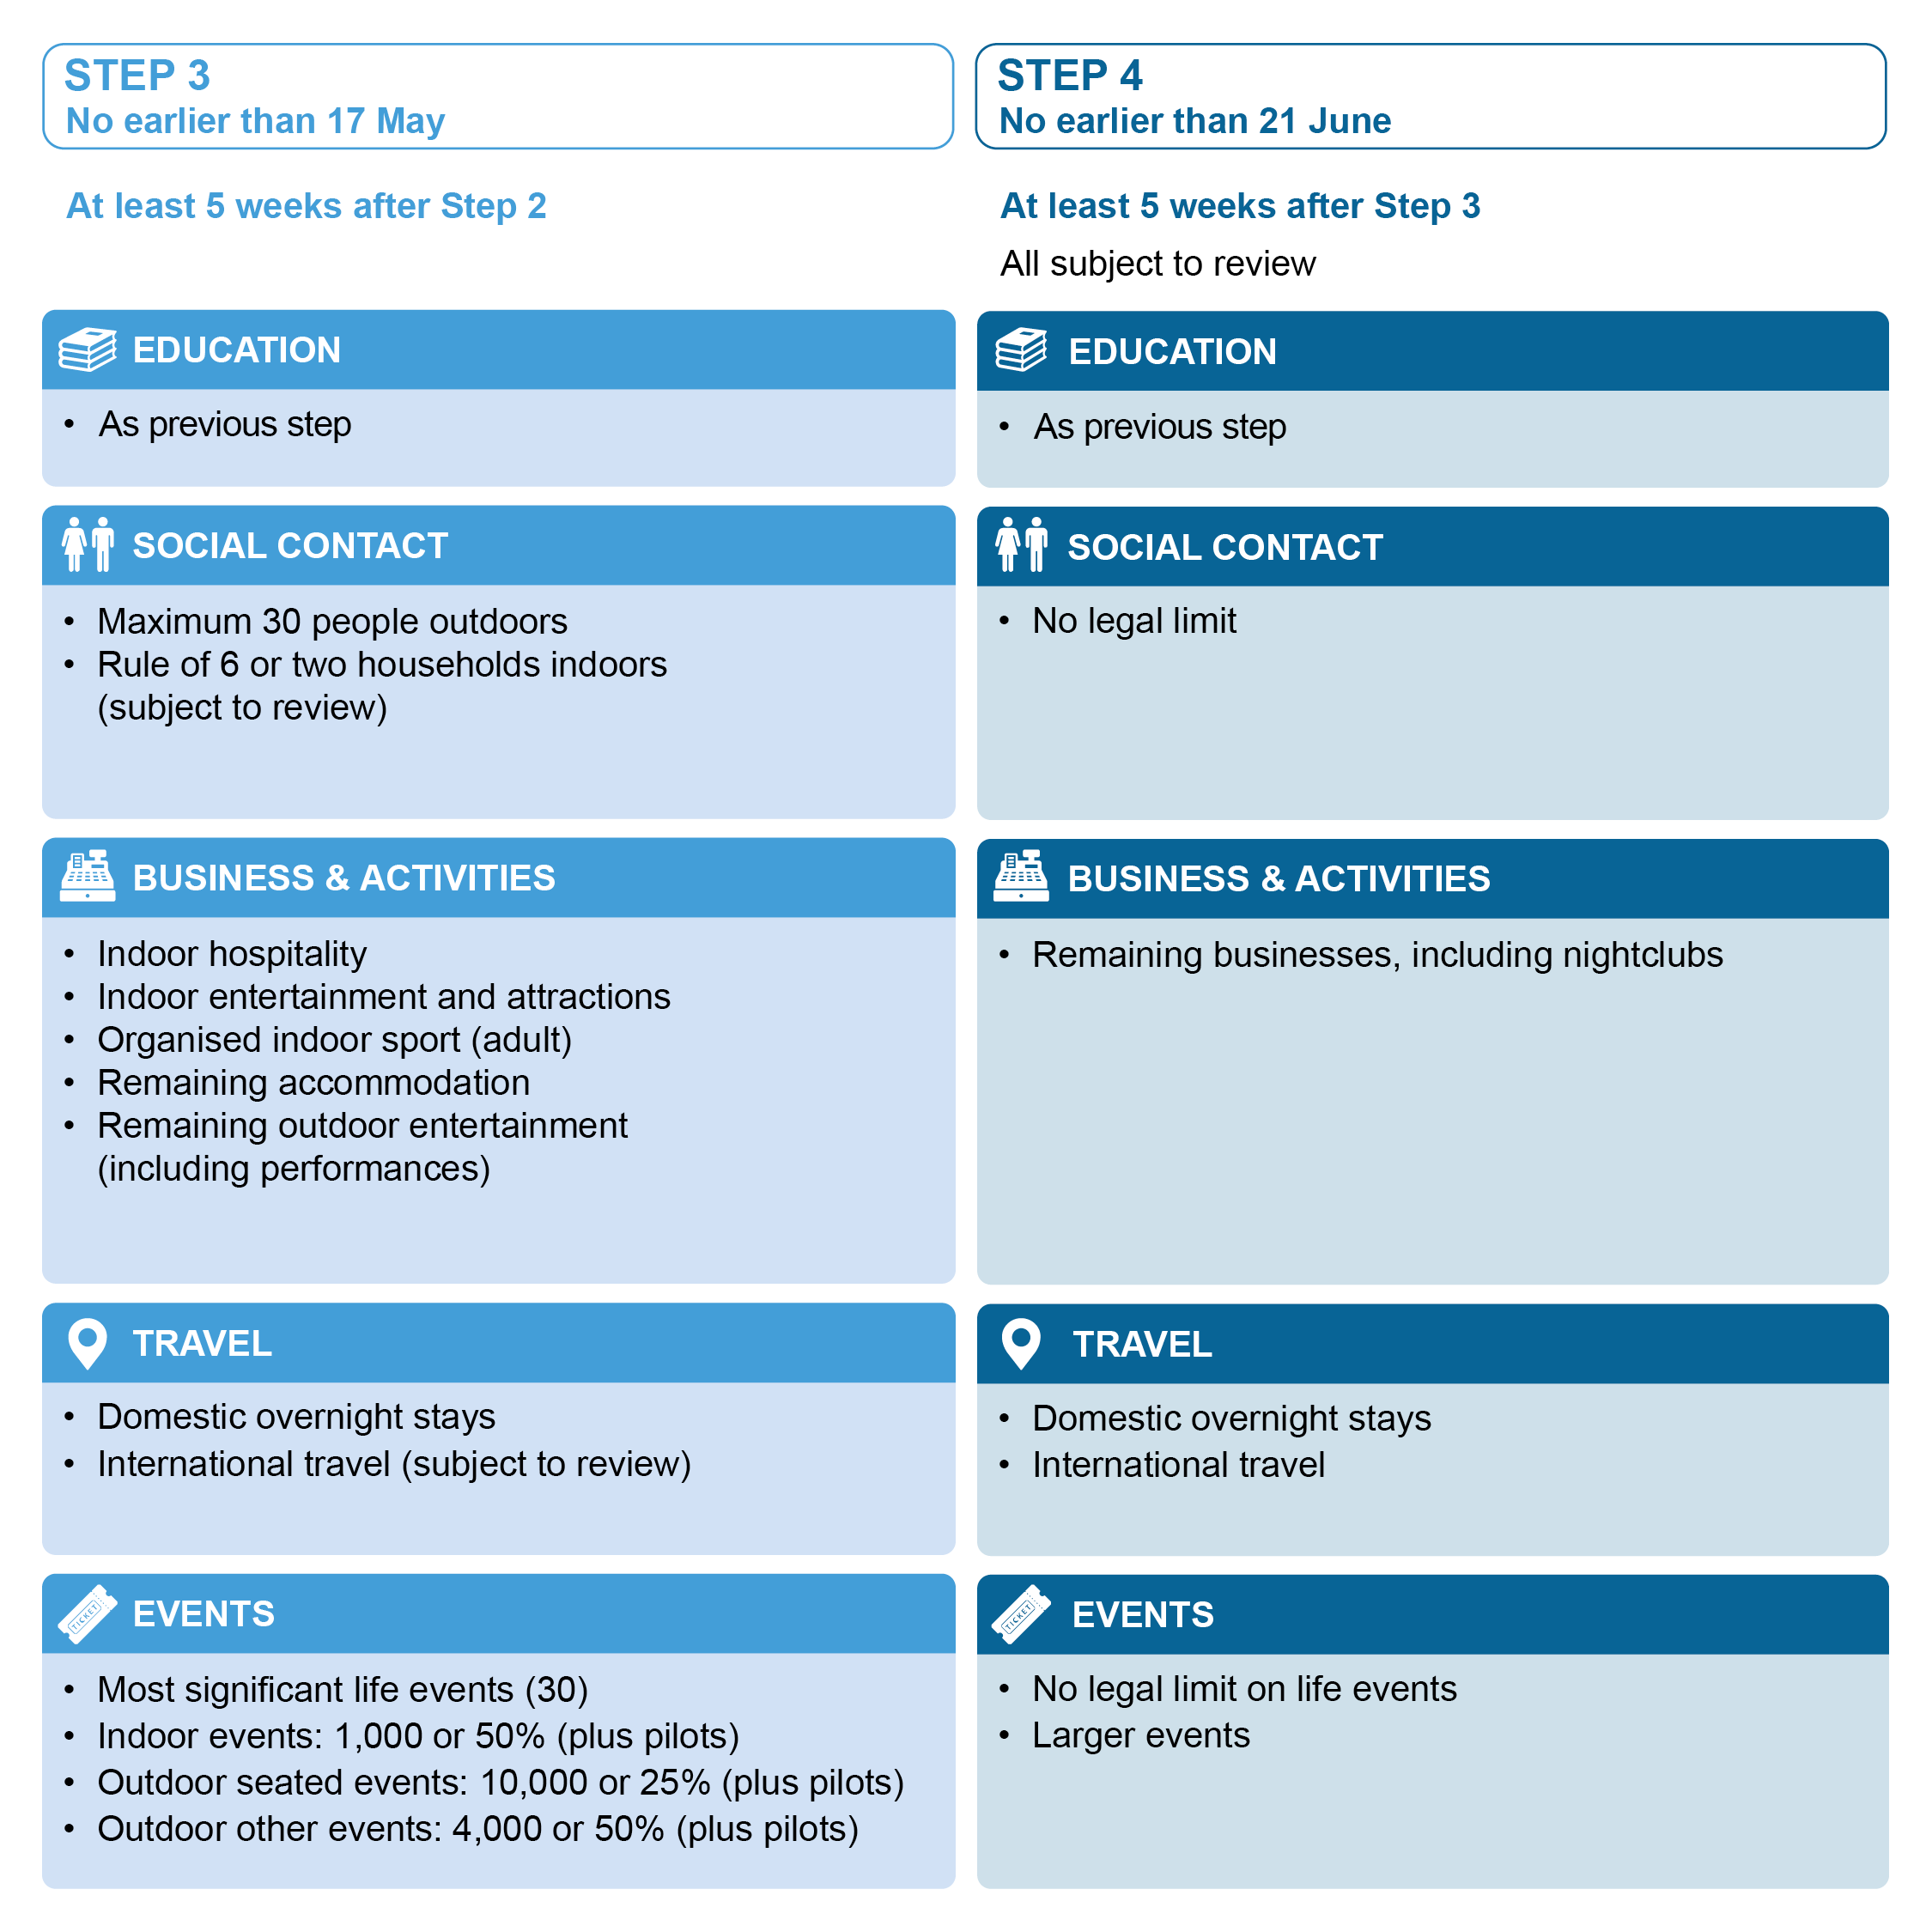 Coronavirus Lockdown Roadmap steps 3 and 4